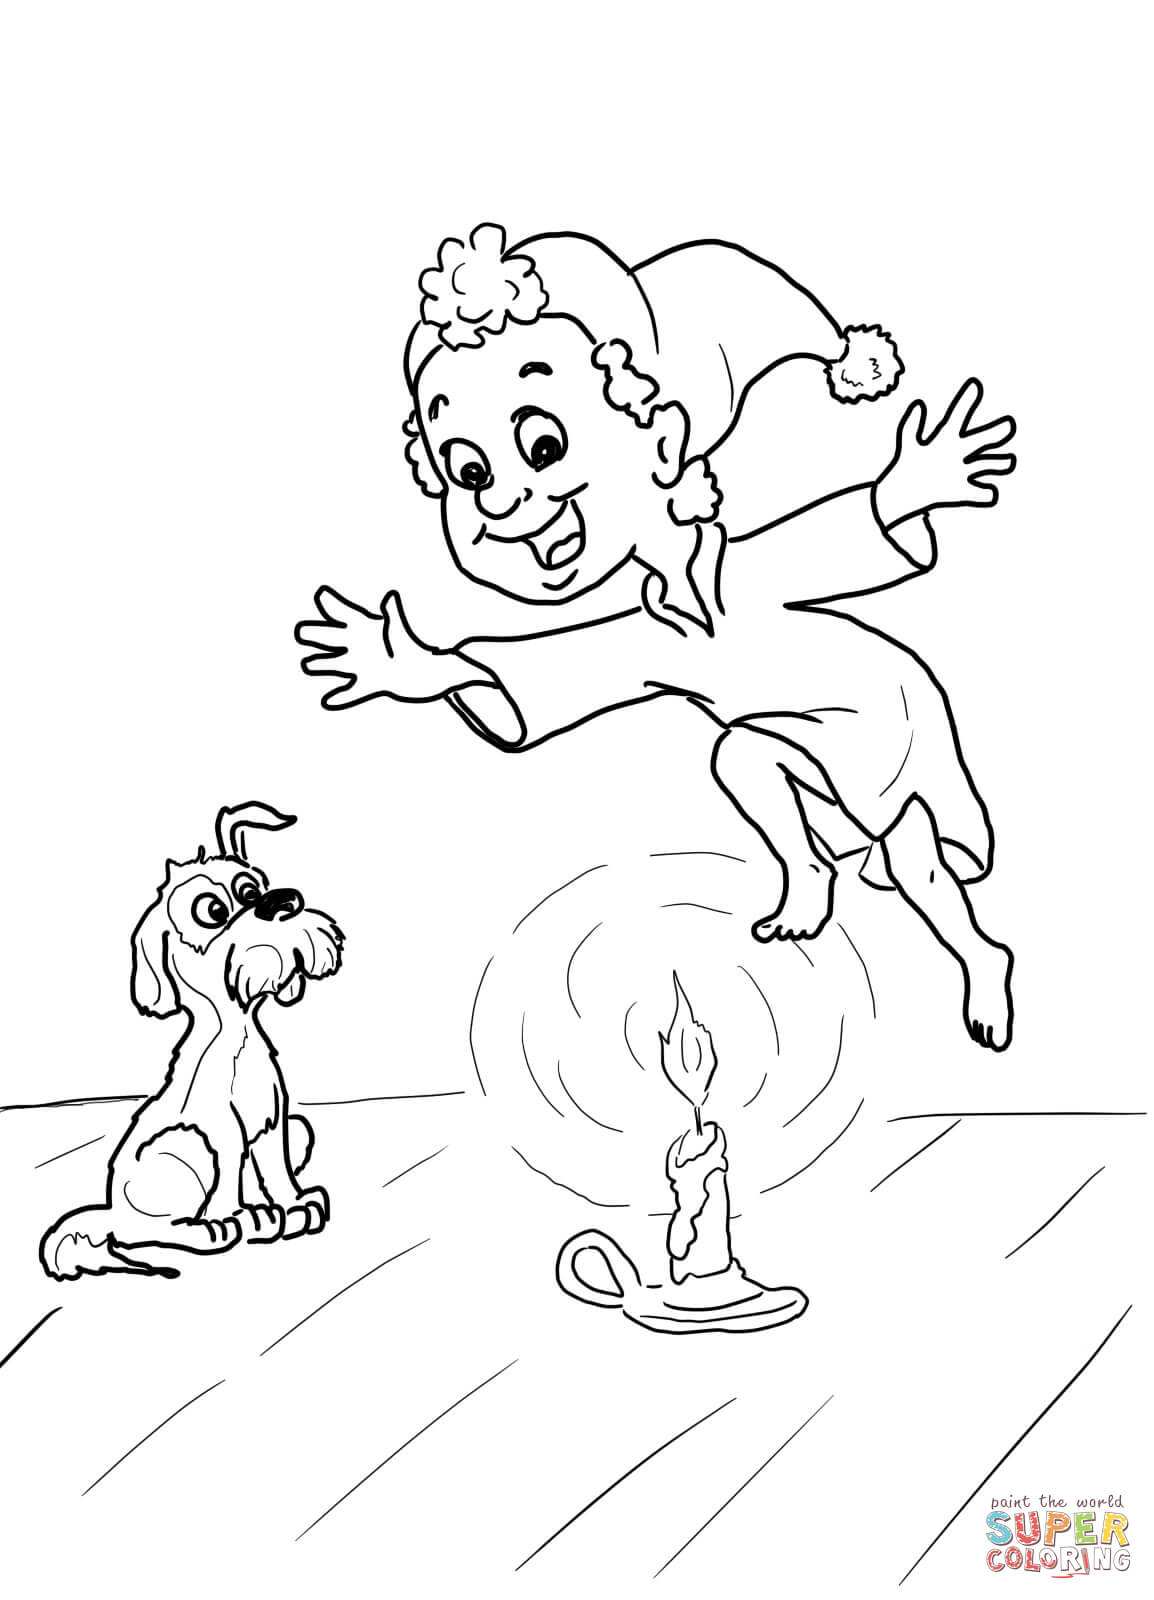 Jack Be Nimble Nursery Rhyme Coloring Page | Free Printable Coloring - Free Printable Nursery Rhyme Coloring Pages